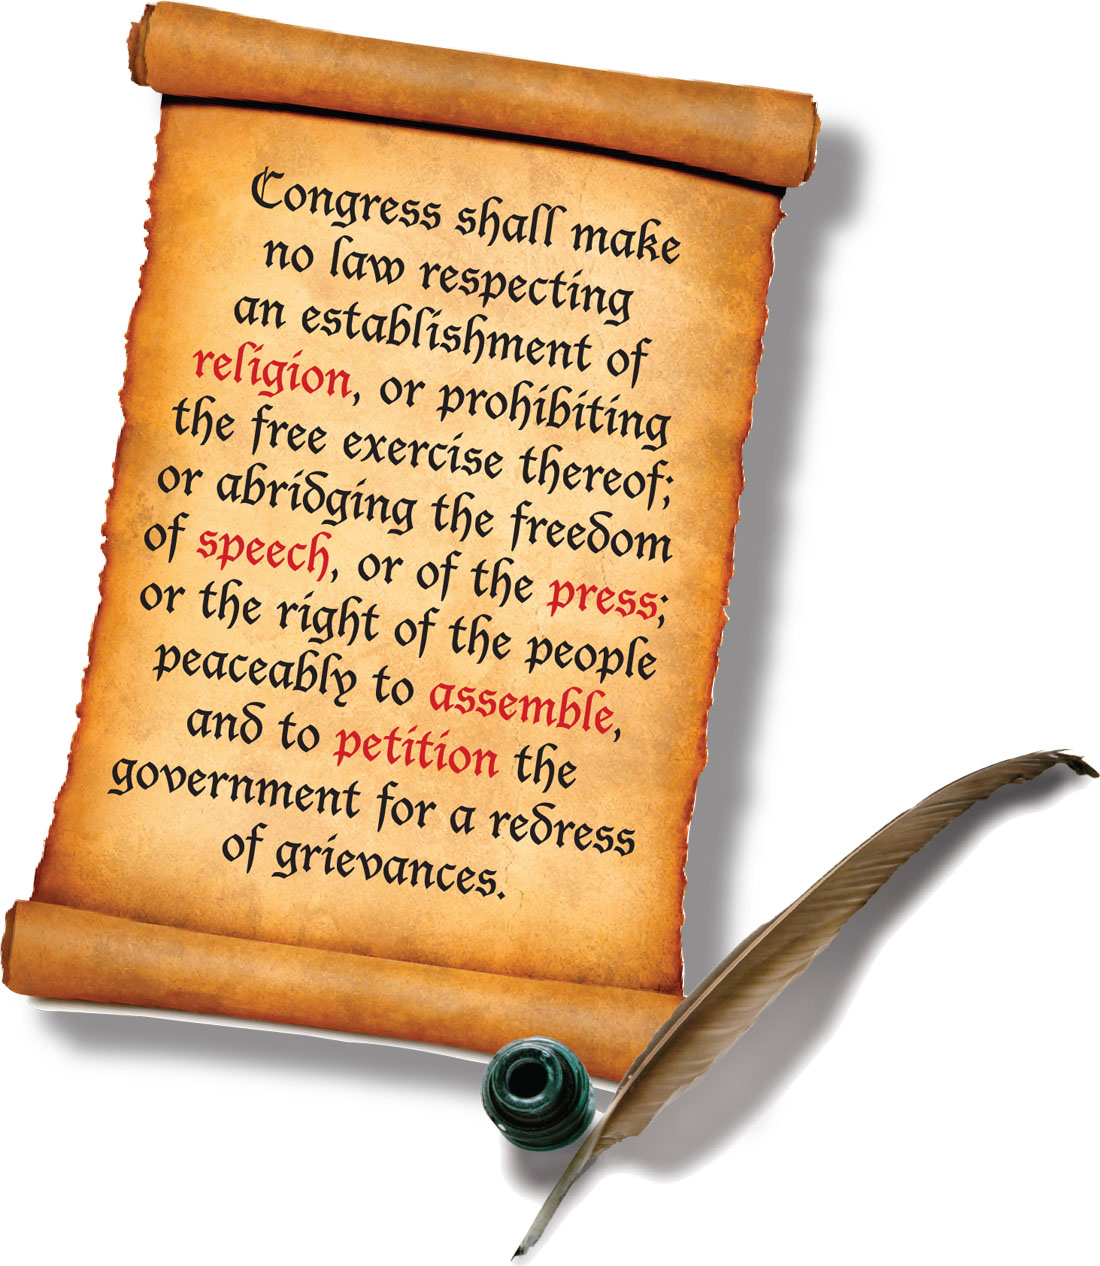 the first ammendment Congress shall make no law respecting an establishment of religion, or prohibiting the free exercise thereof or abridging the freedom of speech, or of the press, or the right of the people peaceably to assemble, and to petition the government for redress of grievances first amendment, us constitution.